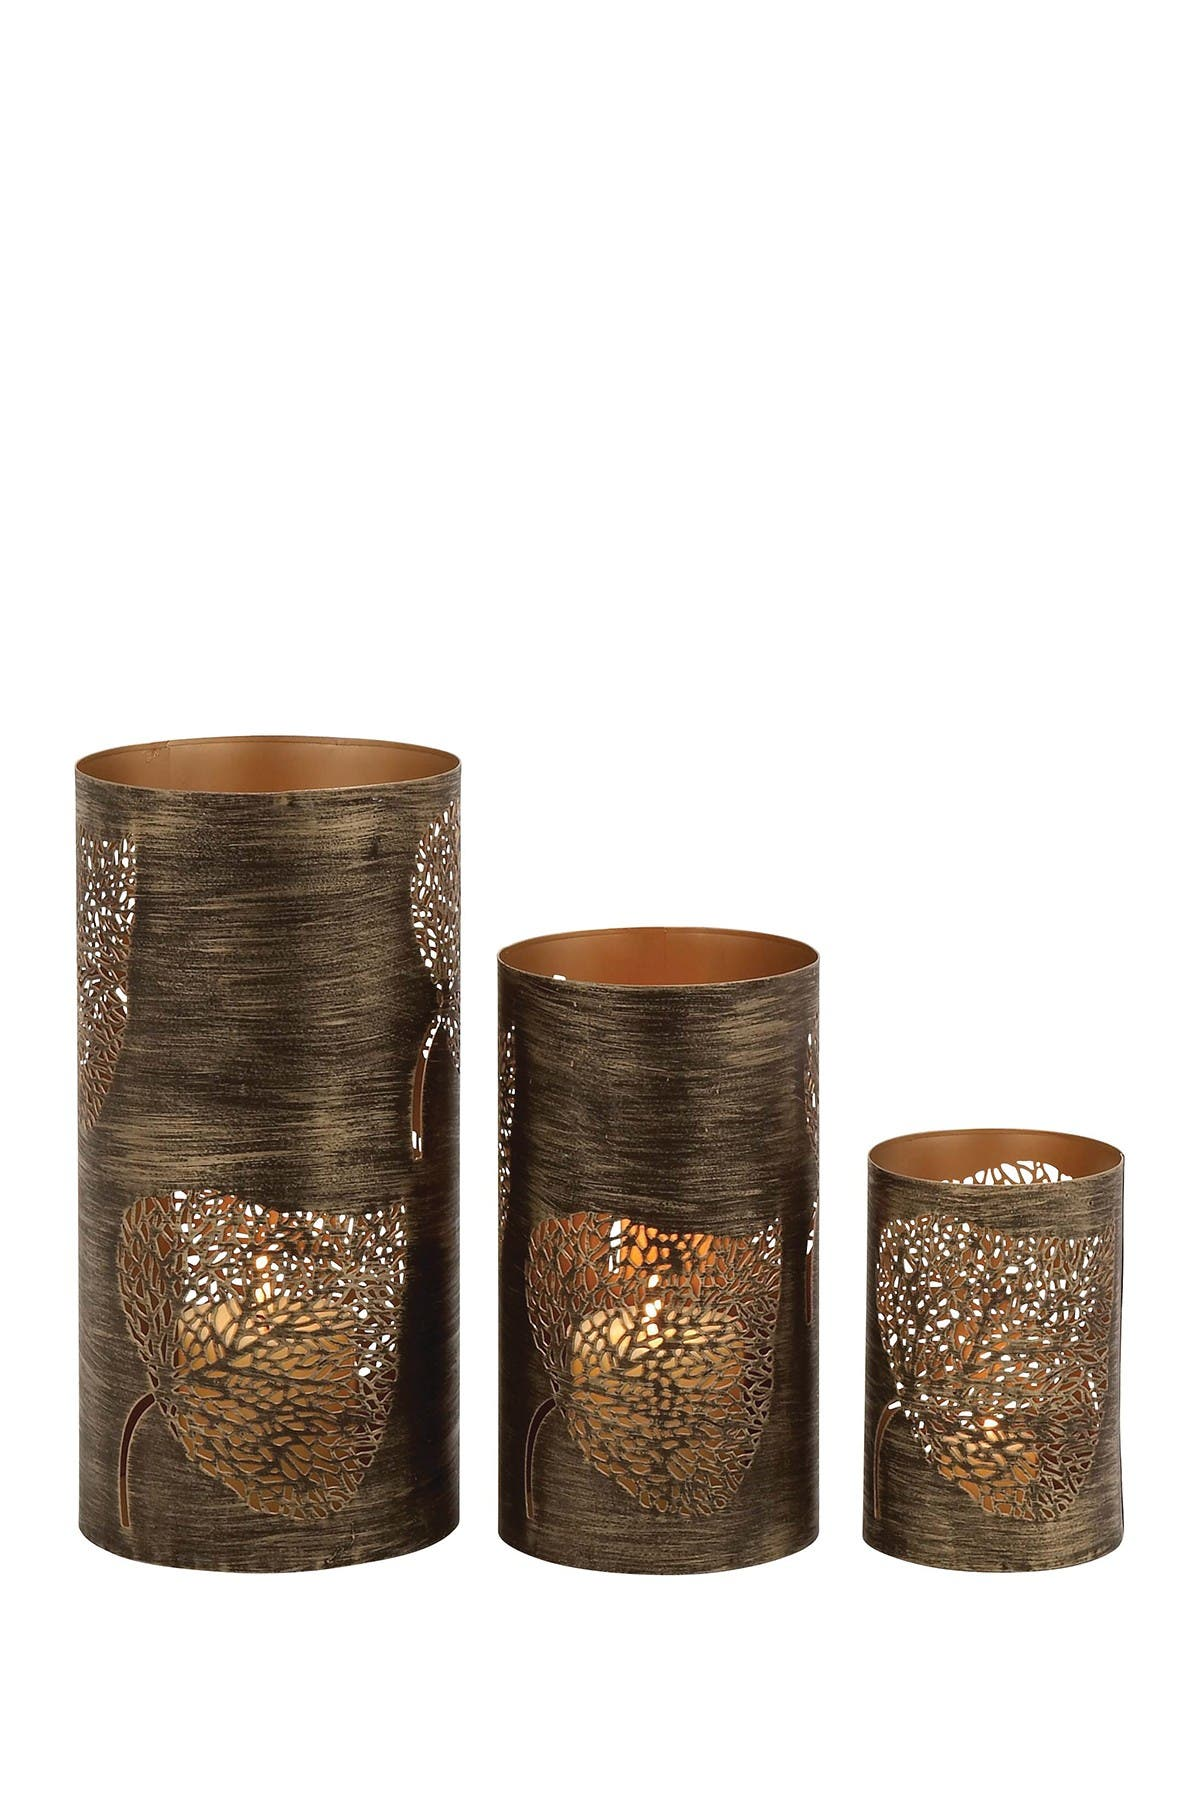 Image of Willow Row Bronze/Brass Contemporary Iron Candle Lanterns - Set of 3